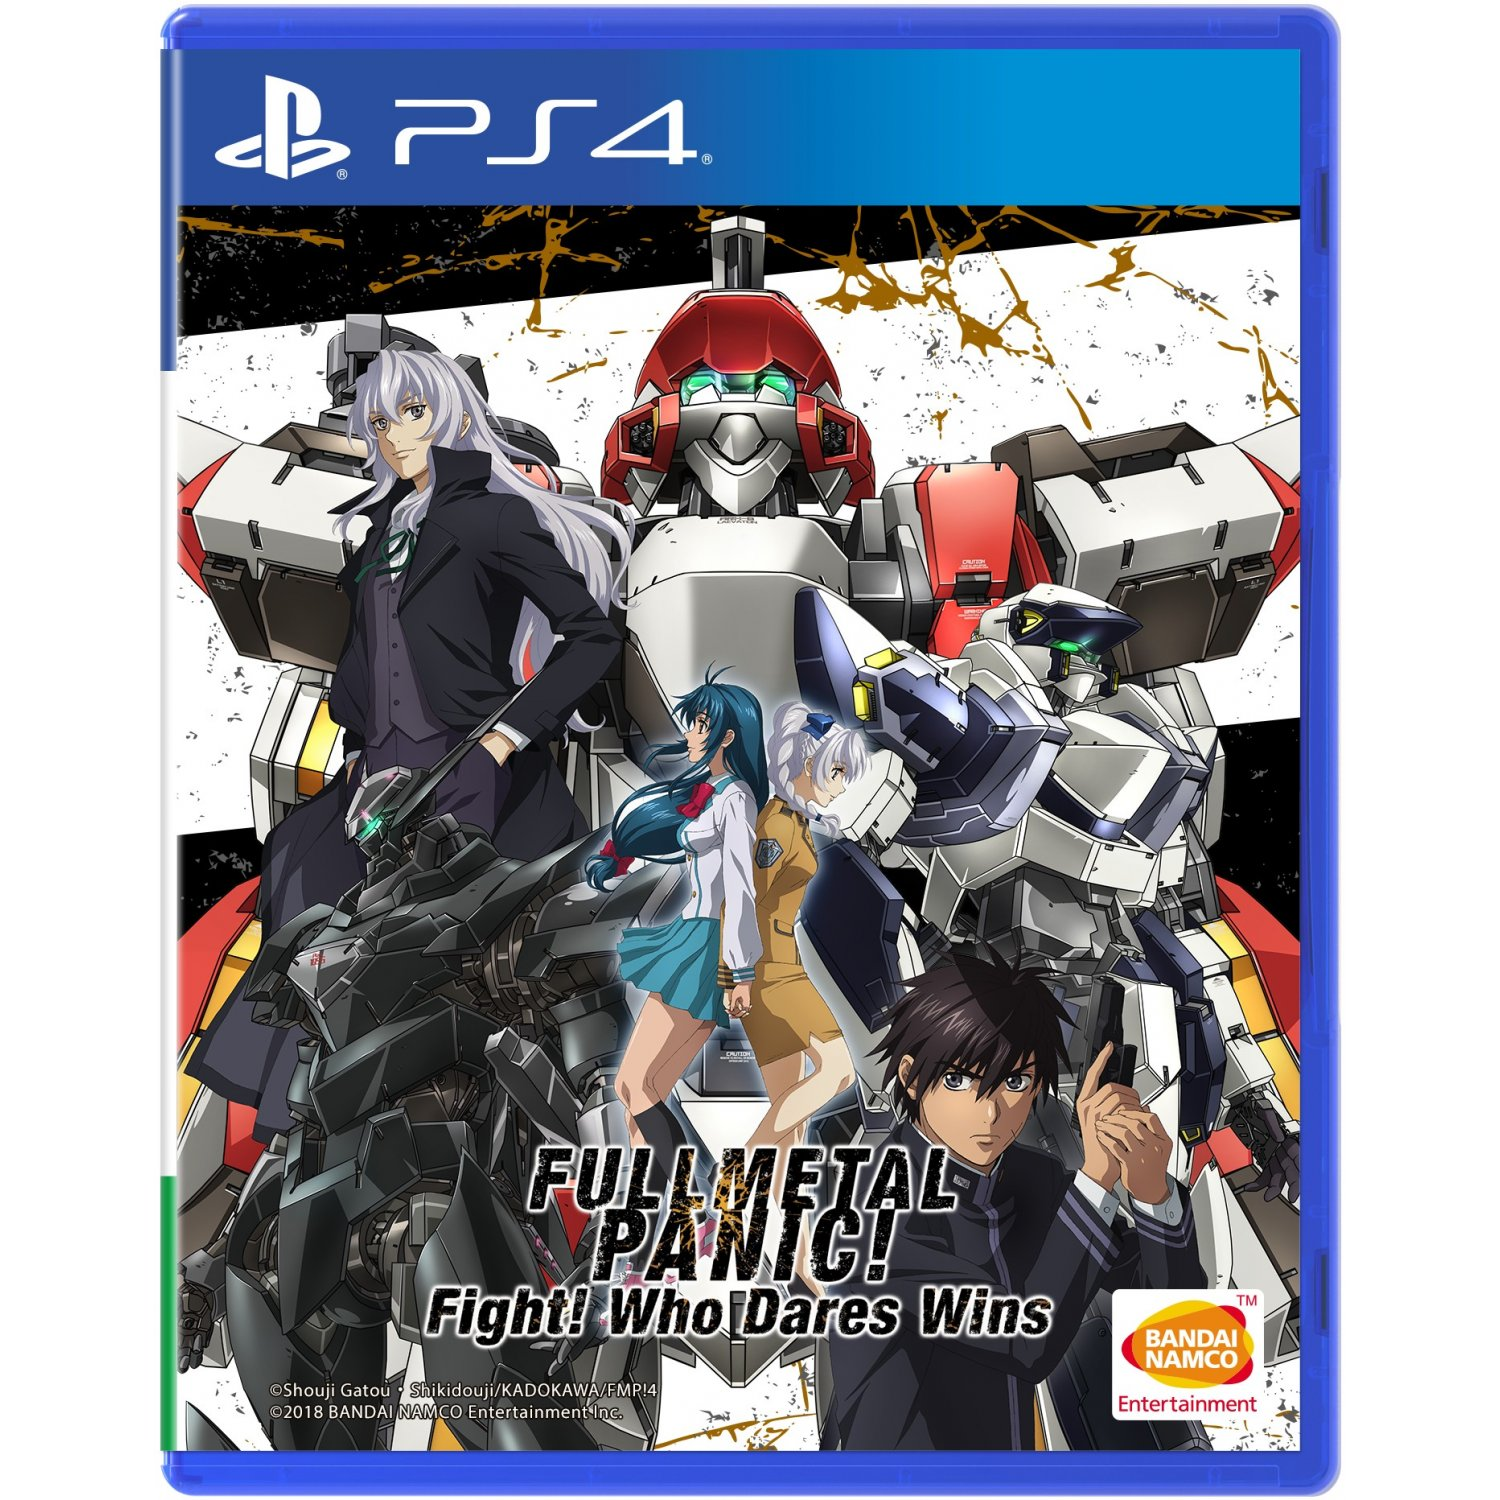 PS4: Full Metal Panic Fight Who Dares Wins (R3)